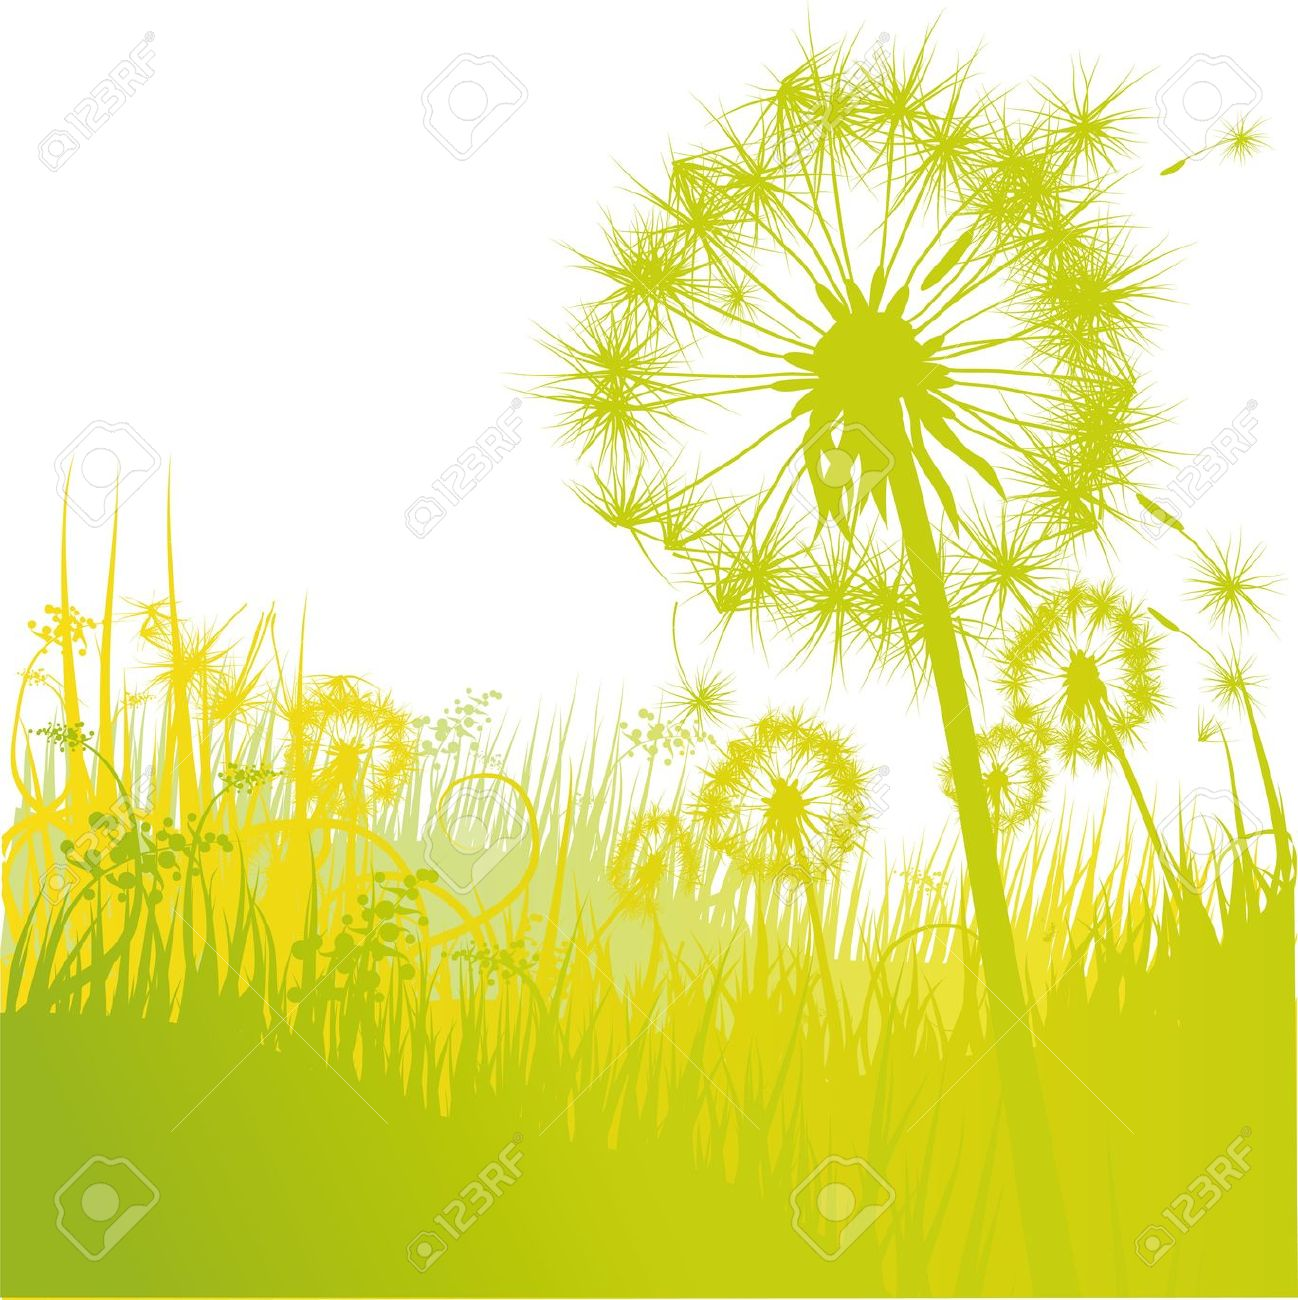 Dandelions And Dandelion Royalty Free Cliparts, Vectors, And Stock.